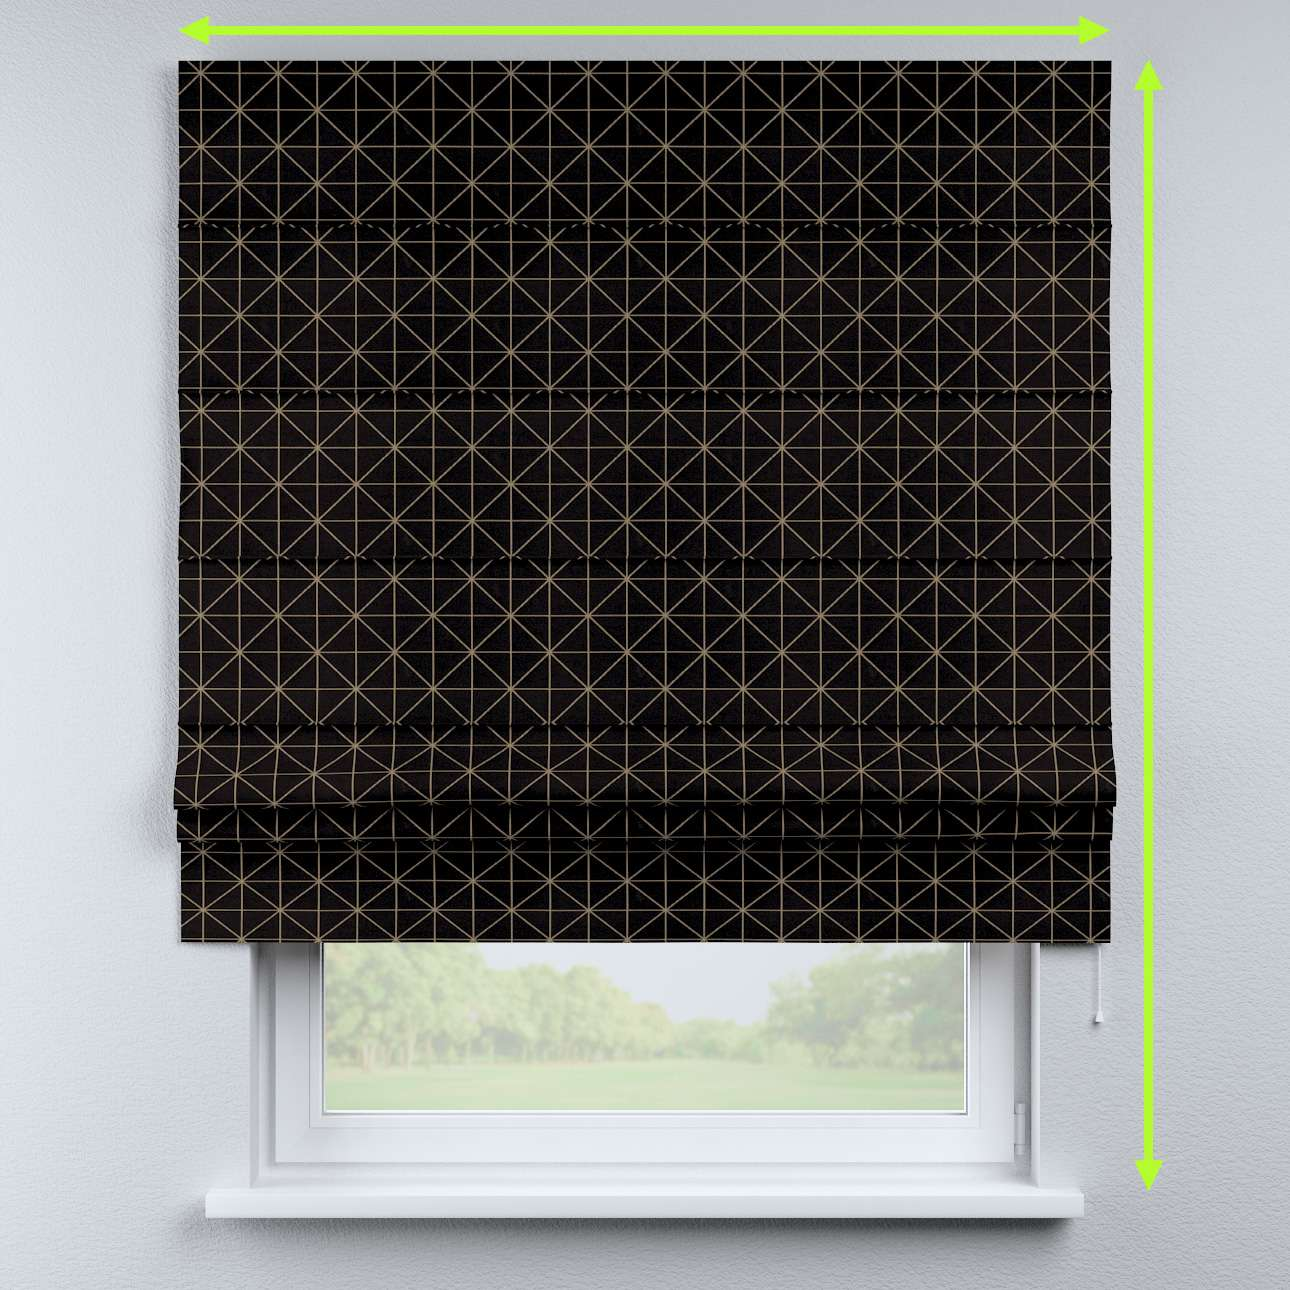 Padva roman blind in collection Black & White, fabric: 142-55